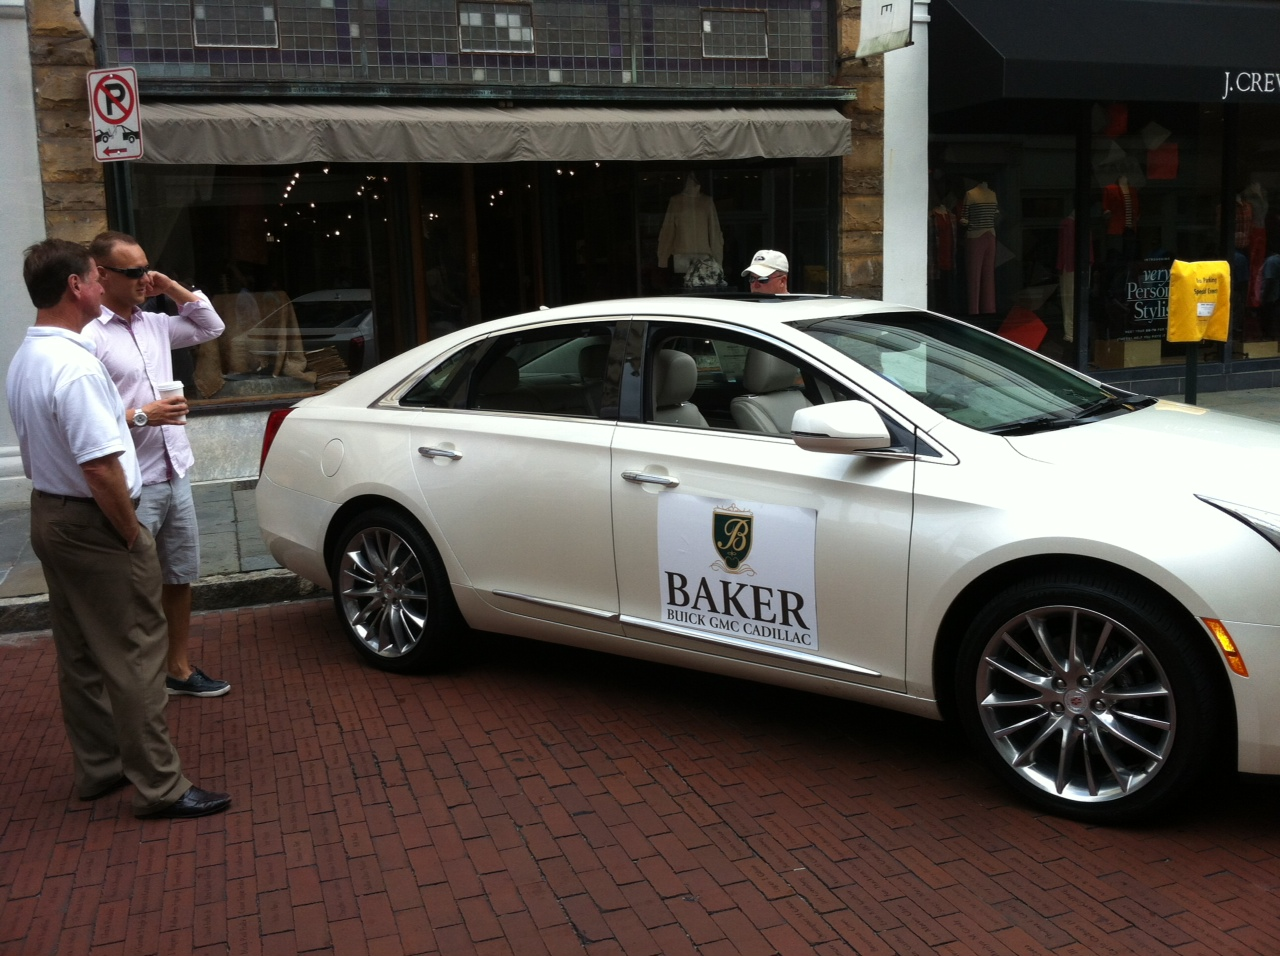 Baker buick gmc cadillac takes to king street for for Cadillac motor car company